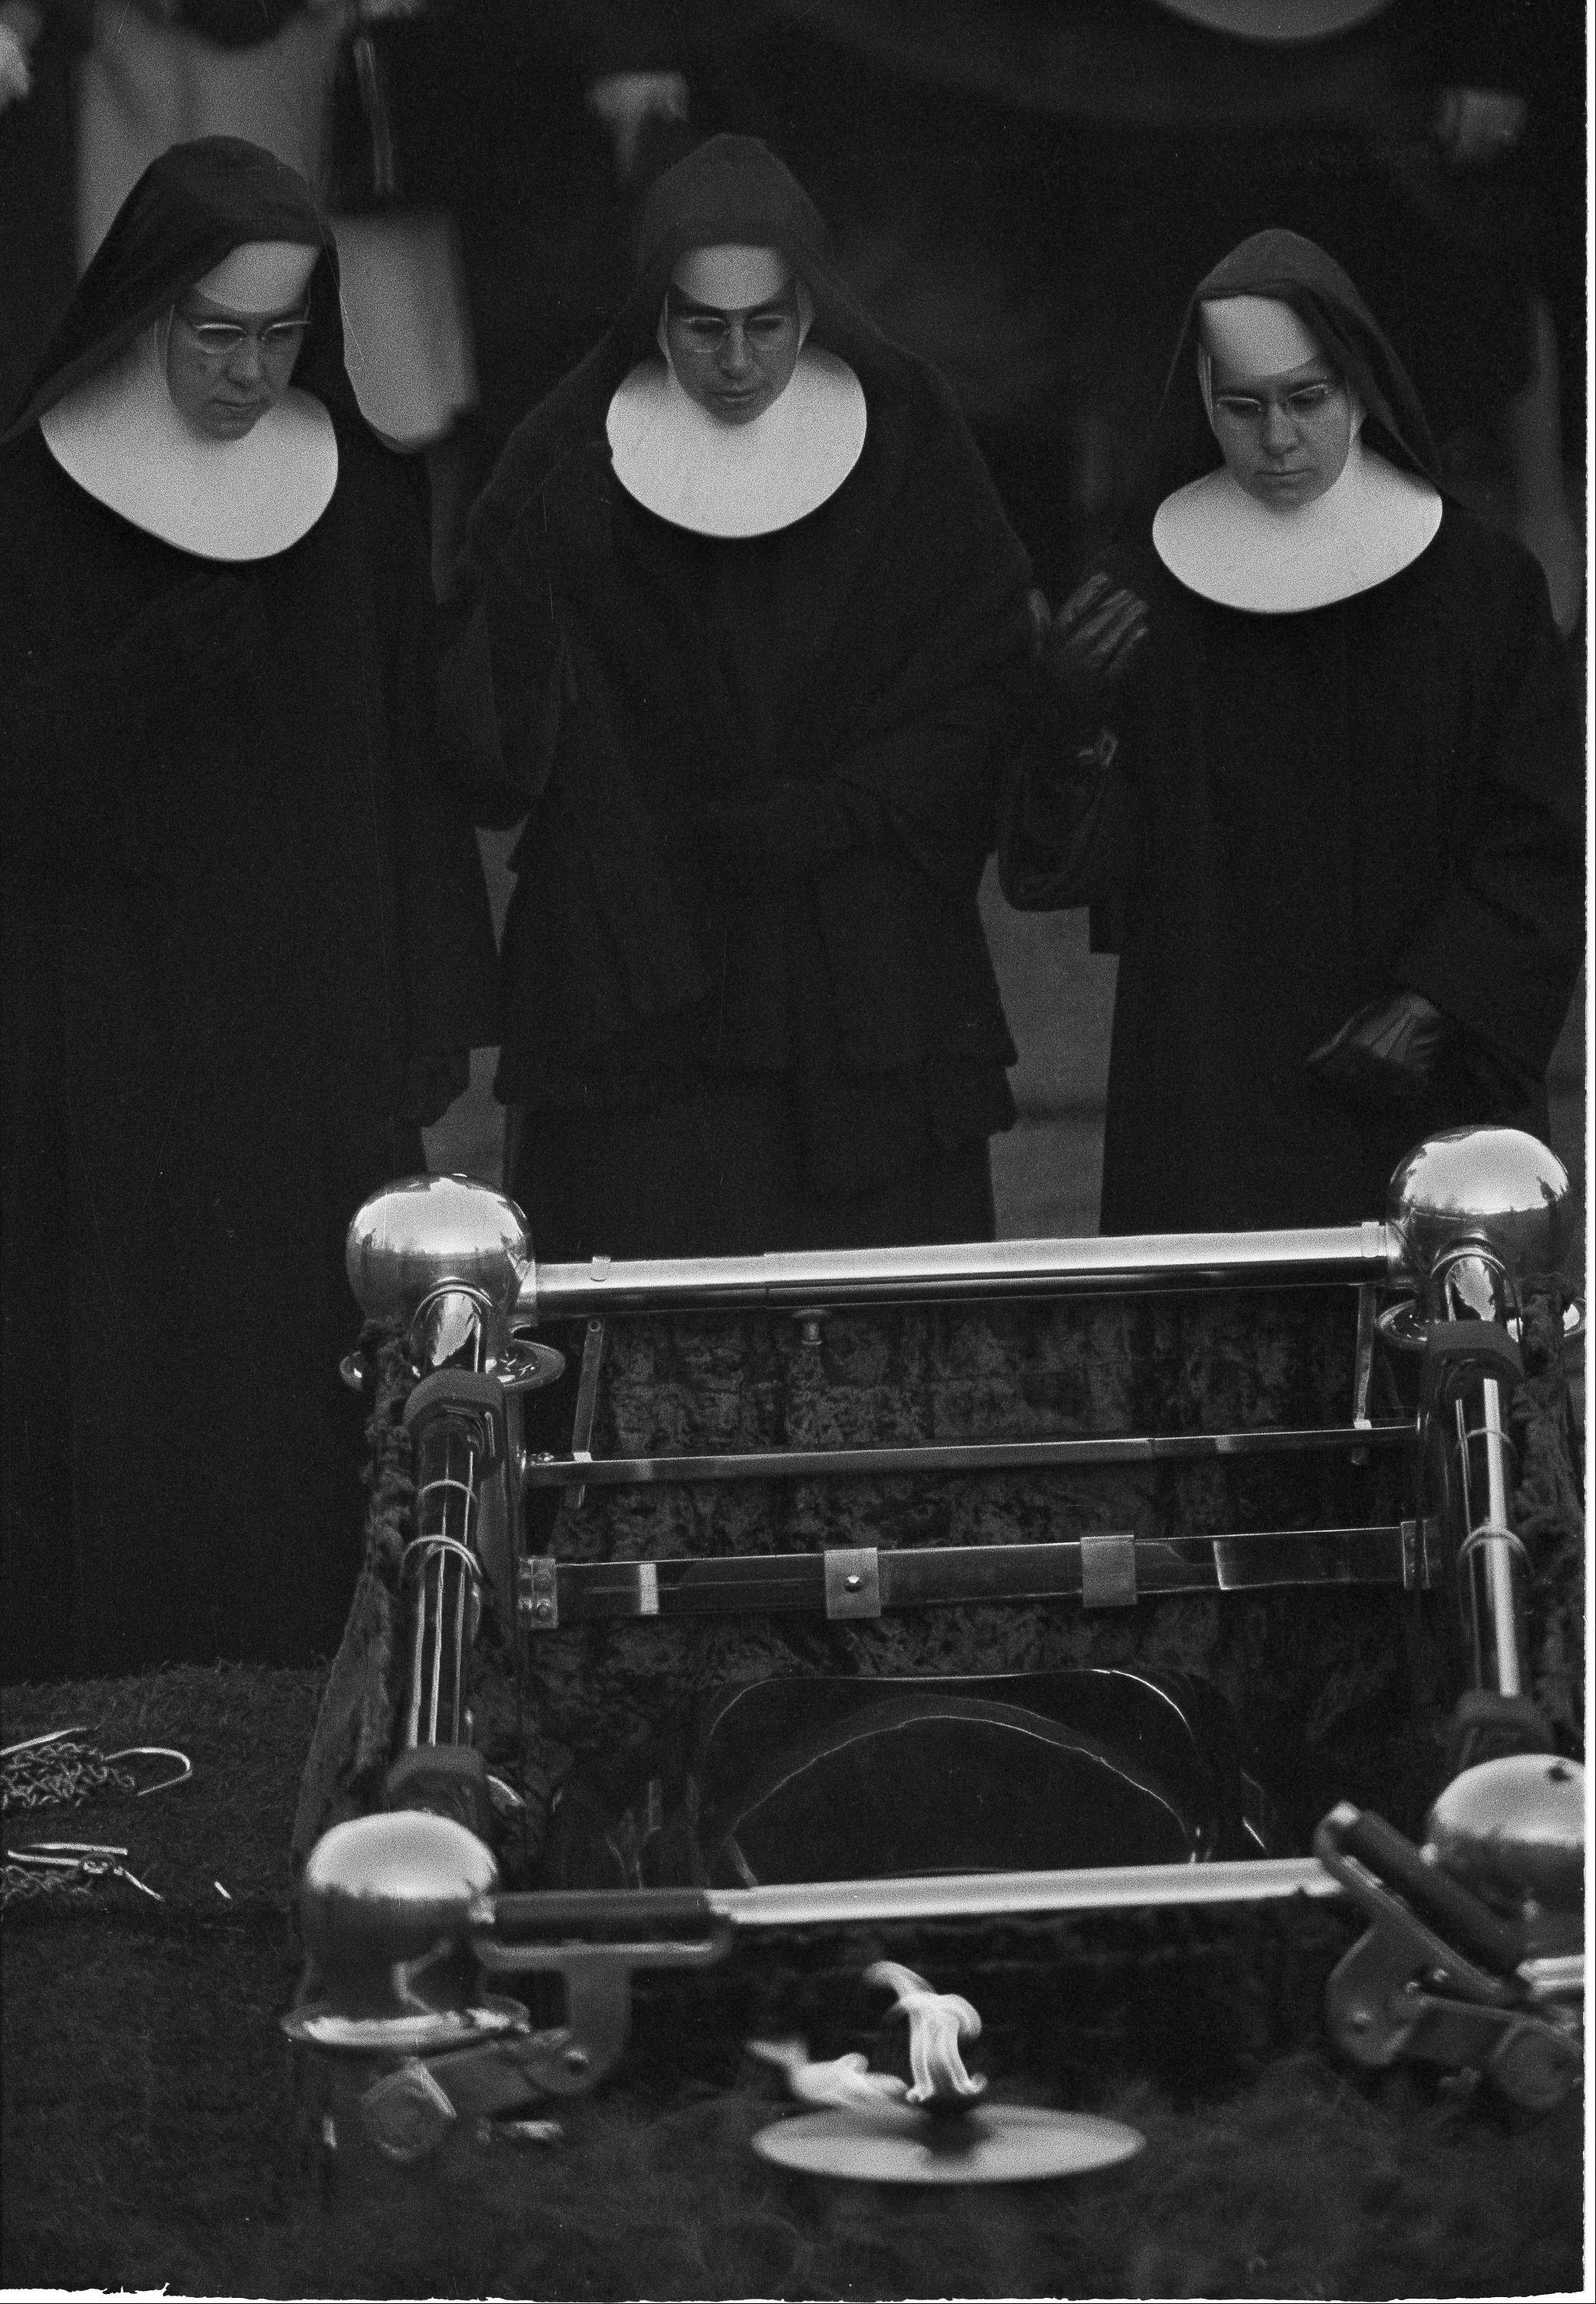 Three Roman Catholic nuns pay their final respects at the grave of President John F. Kennedy at Arlington National Cemetery, Nov. 25, 1963. Kennedy was the first Roman Catholic elected to the presidency.